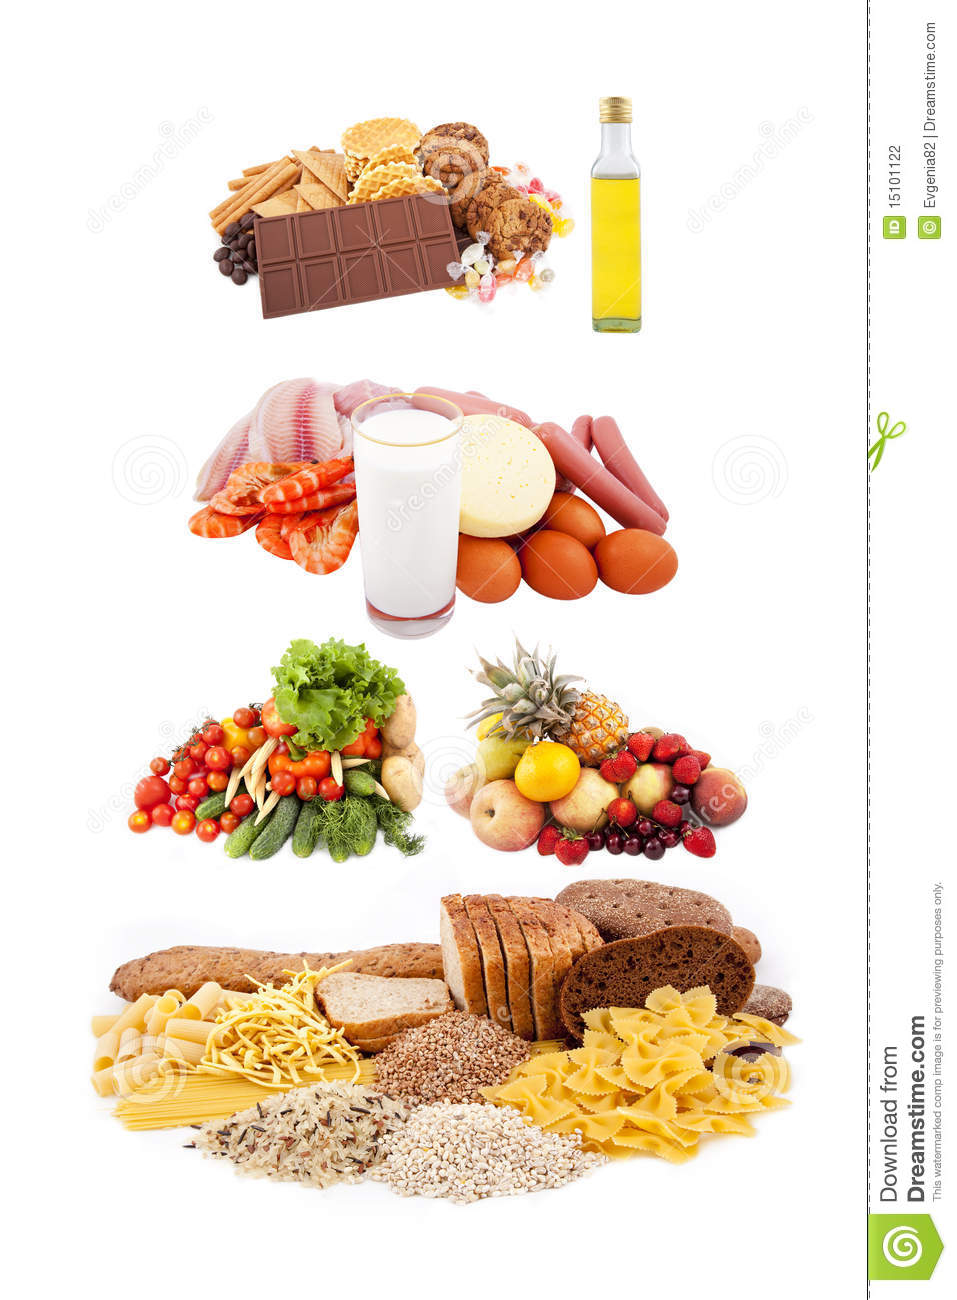 Healthy eating pyramid stock photo. Image of fattening